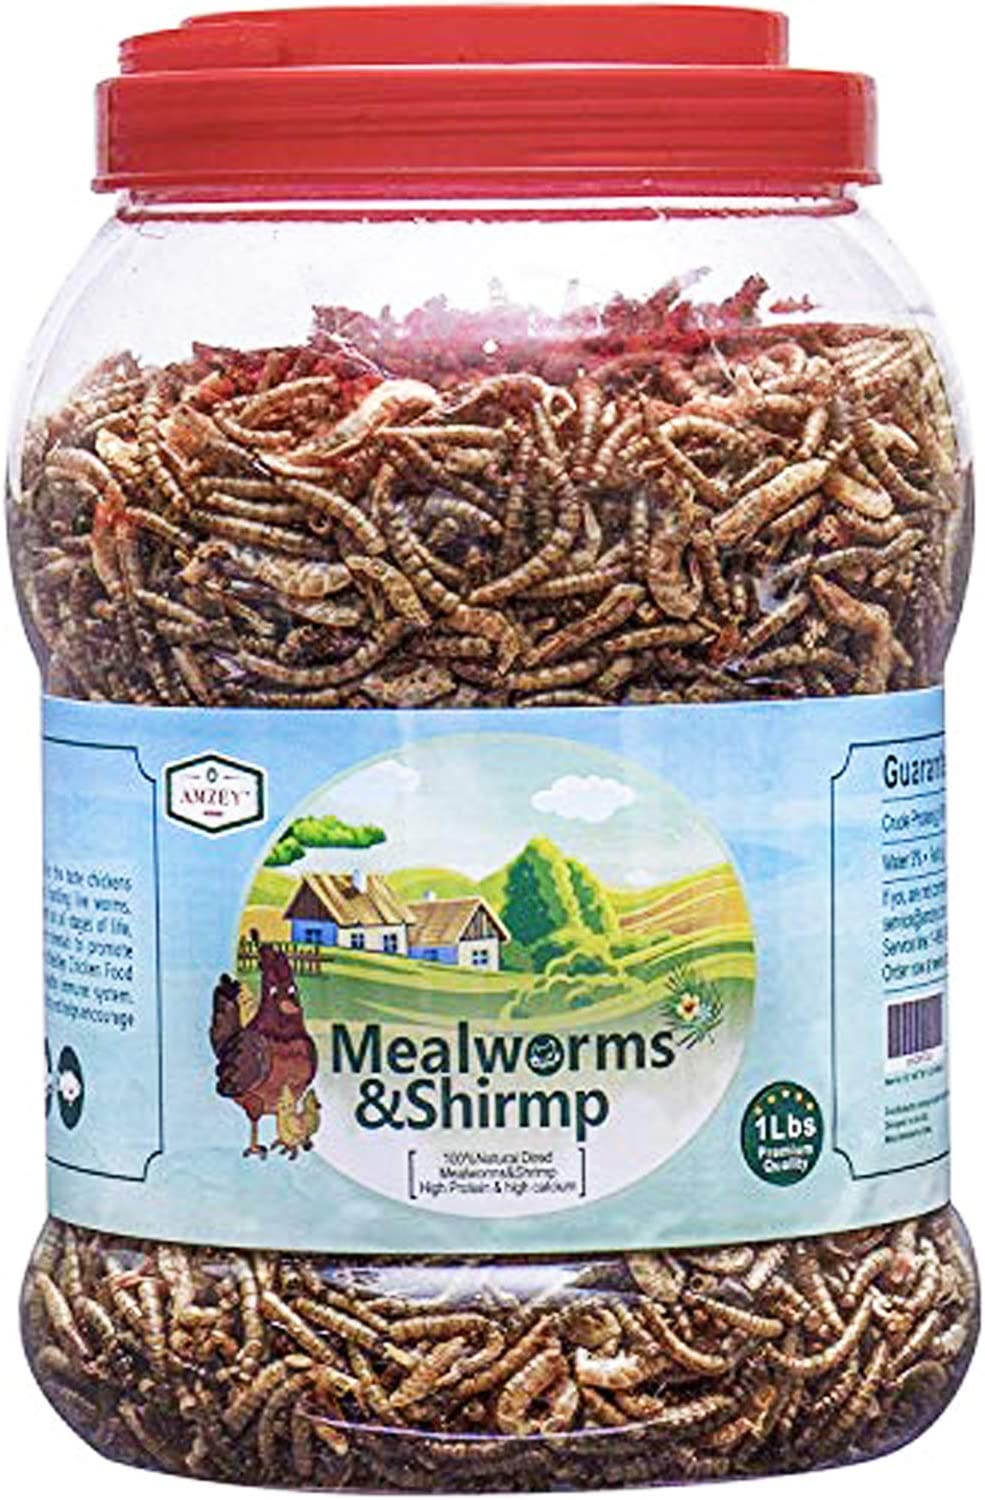 Amzey Shrimp & Mealworms 100% Non-GMO Dried Mealworms - High-Protein Meal Worm Treats -Perfect for Your Chickens,Ducks,Wild Birds,Turtles,Hamsters,Fish,and Hedgehogs